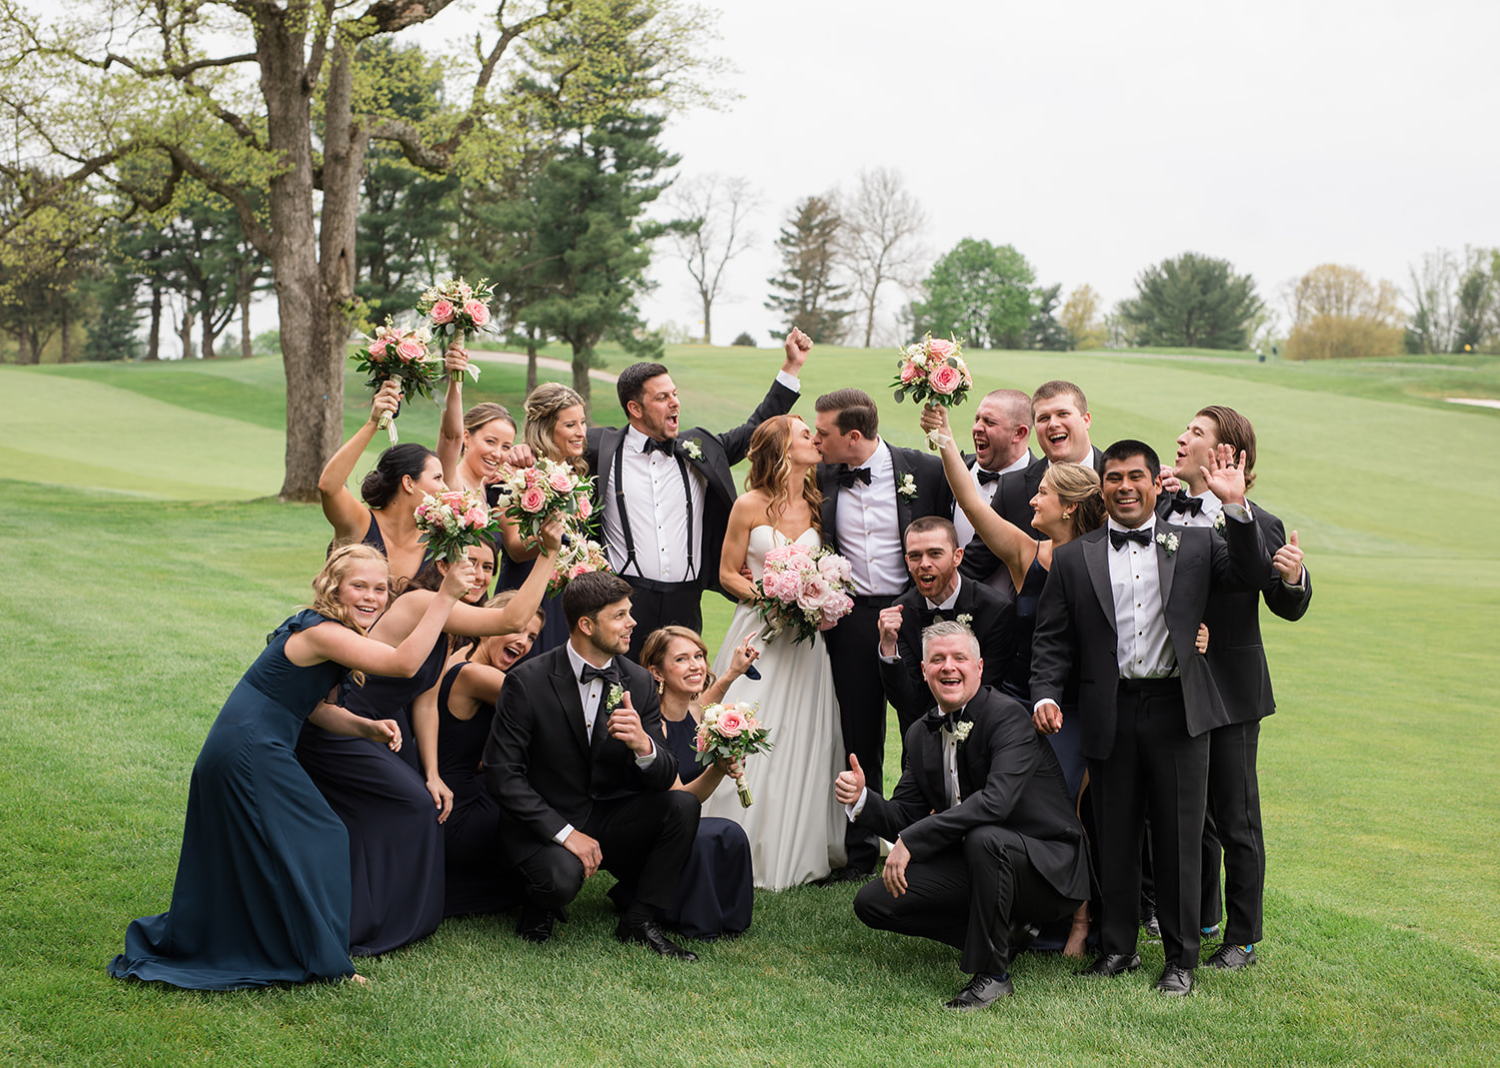 bride and groom with their bridal party